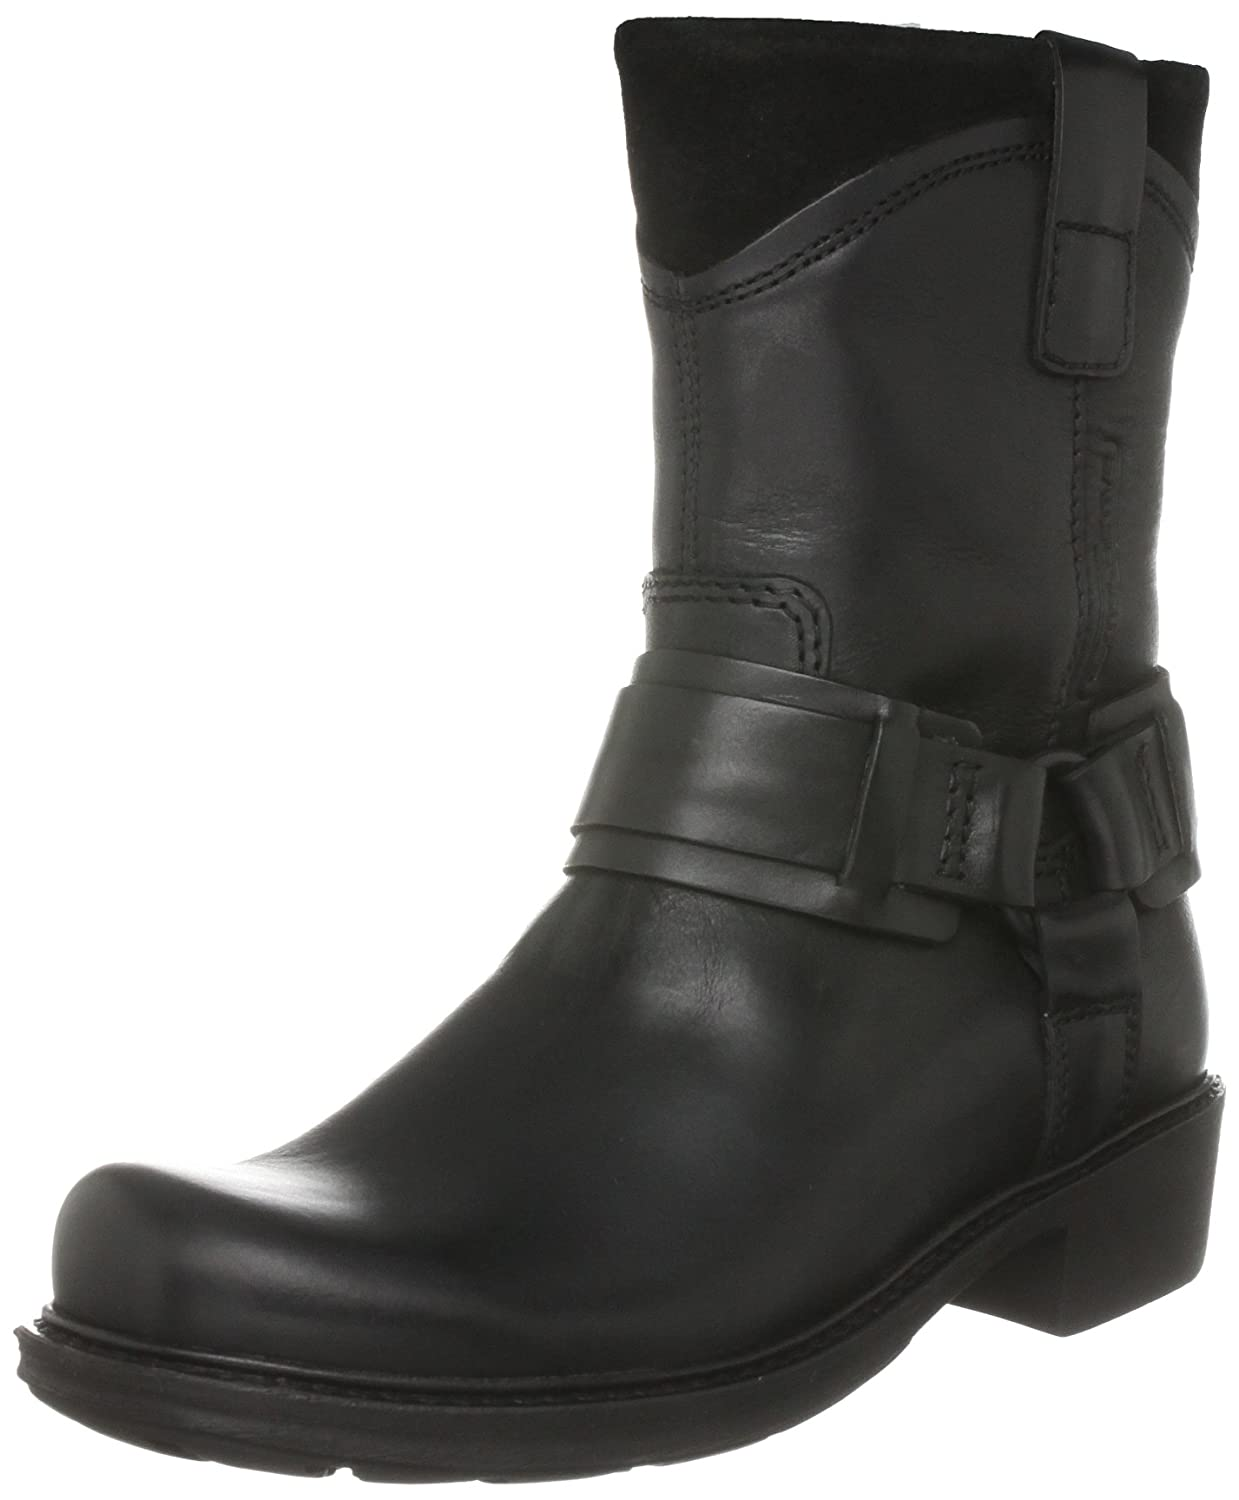 Camel Women's Zip 01 Black 13 Side Boot Active 749 Dallas uTKFc5l1J3